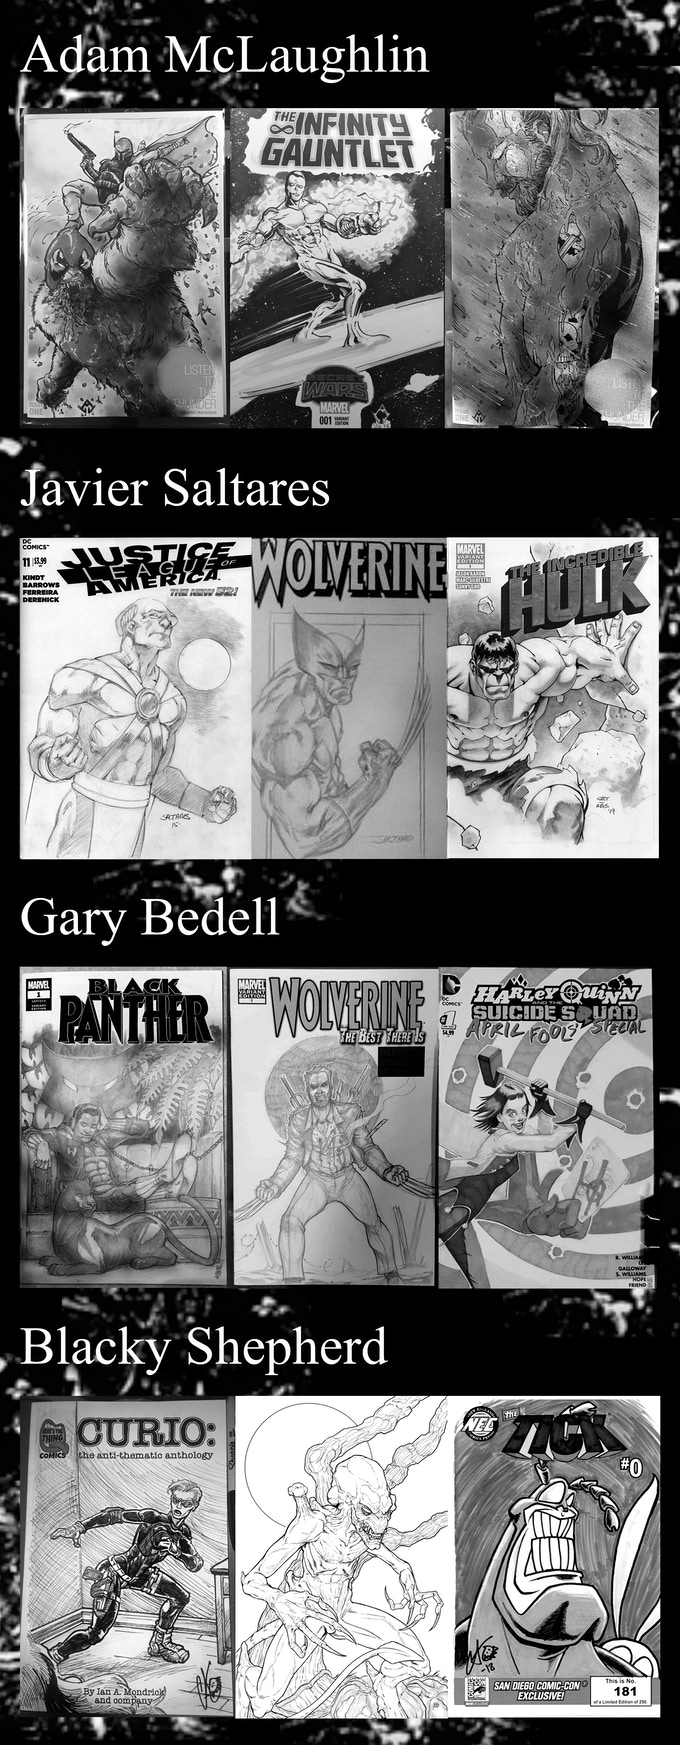 Sketch Cover Examples by artists Adam McLaughlin, Javier Saltares, Gary Bedell, and Blacky Shepherd